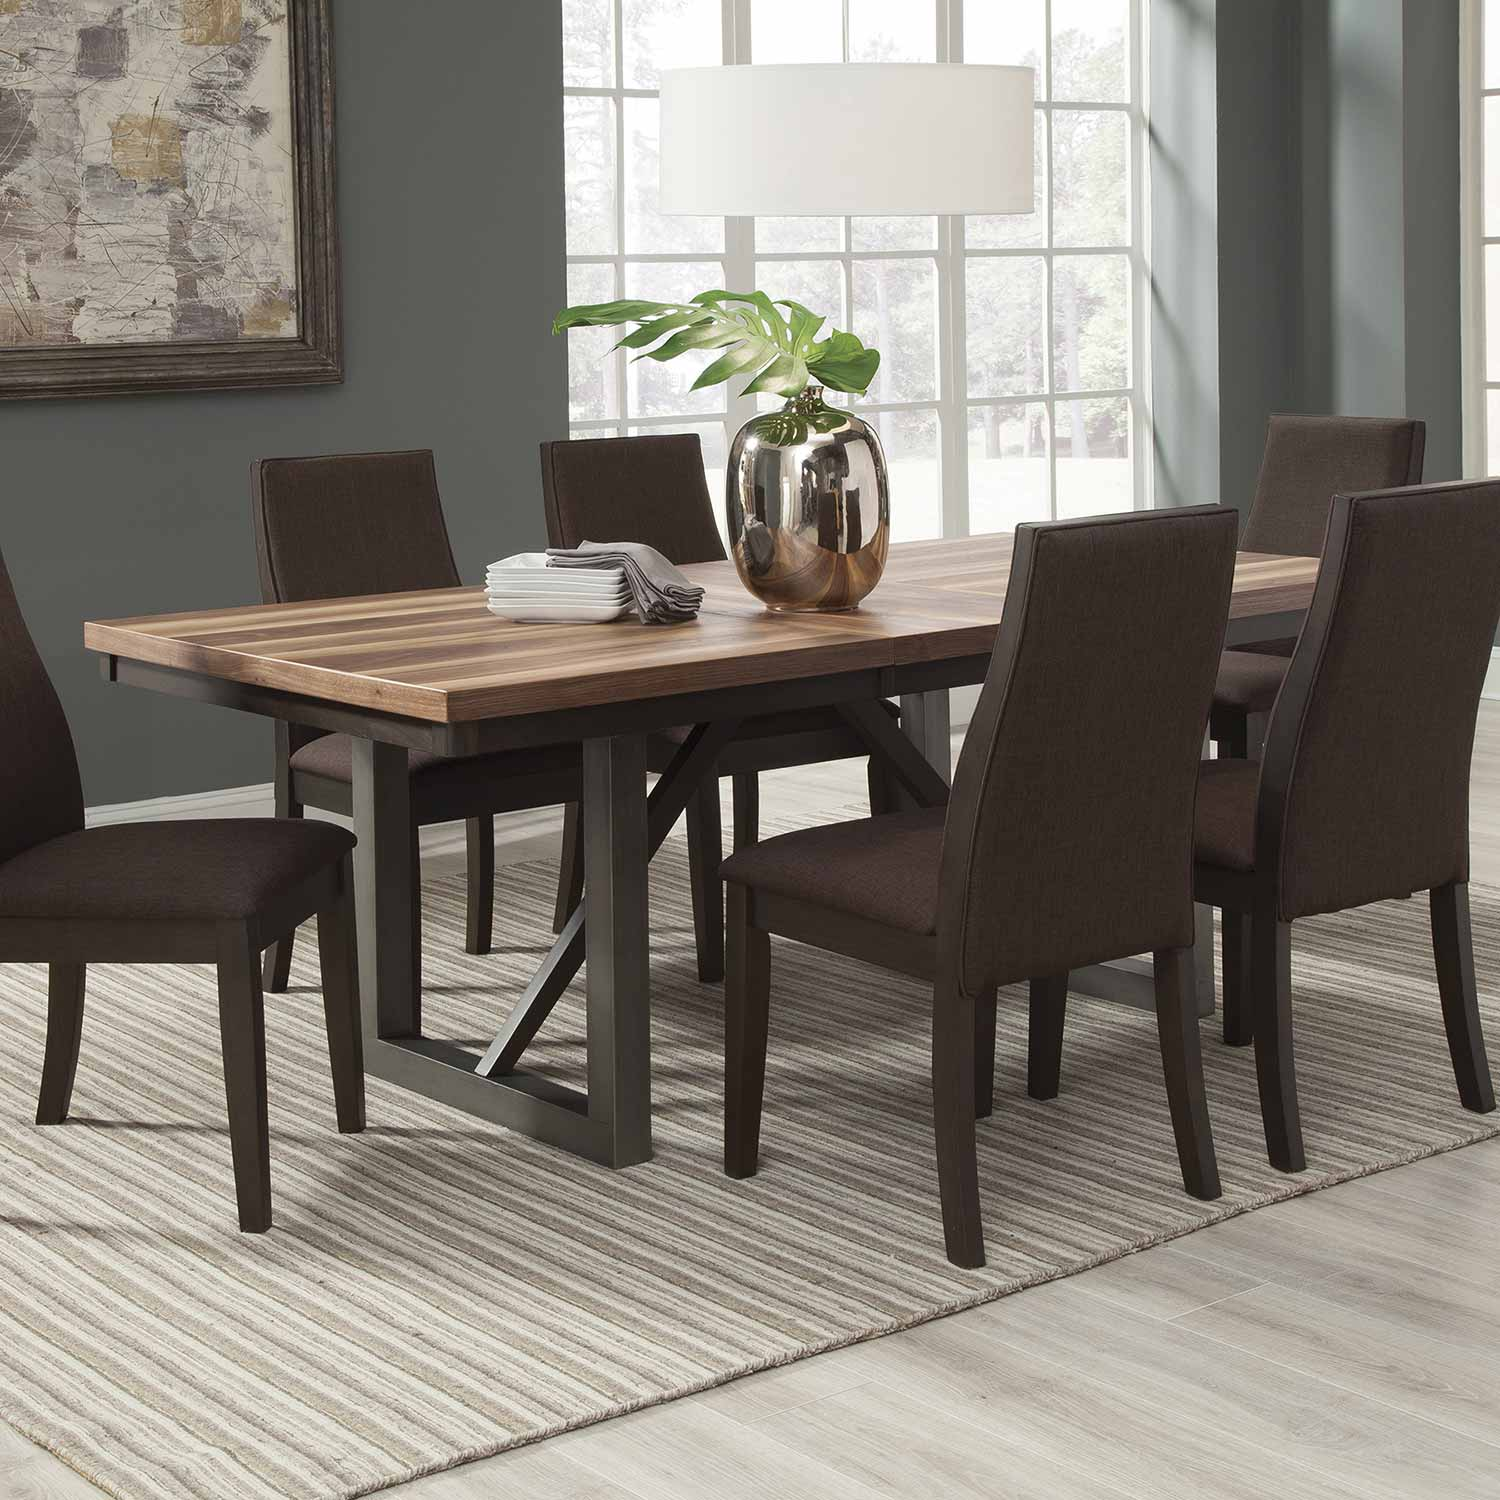 Coaster Spring Creek Rectangular Dining Table With Leaf